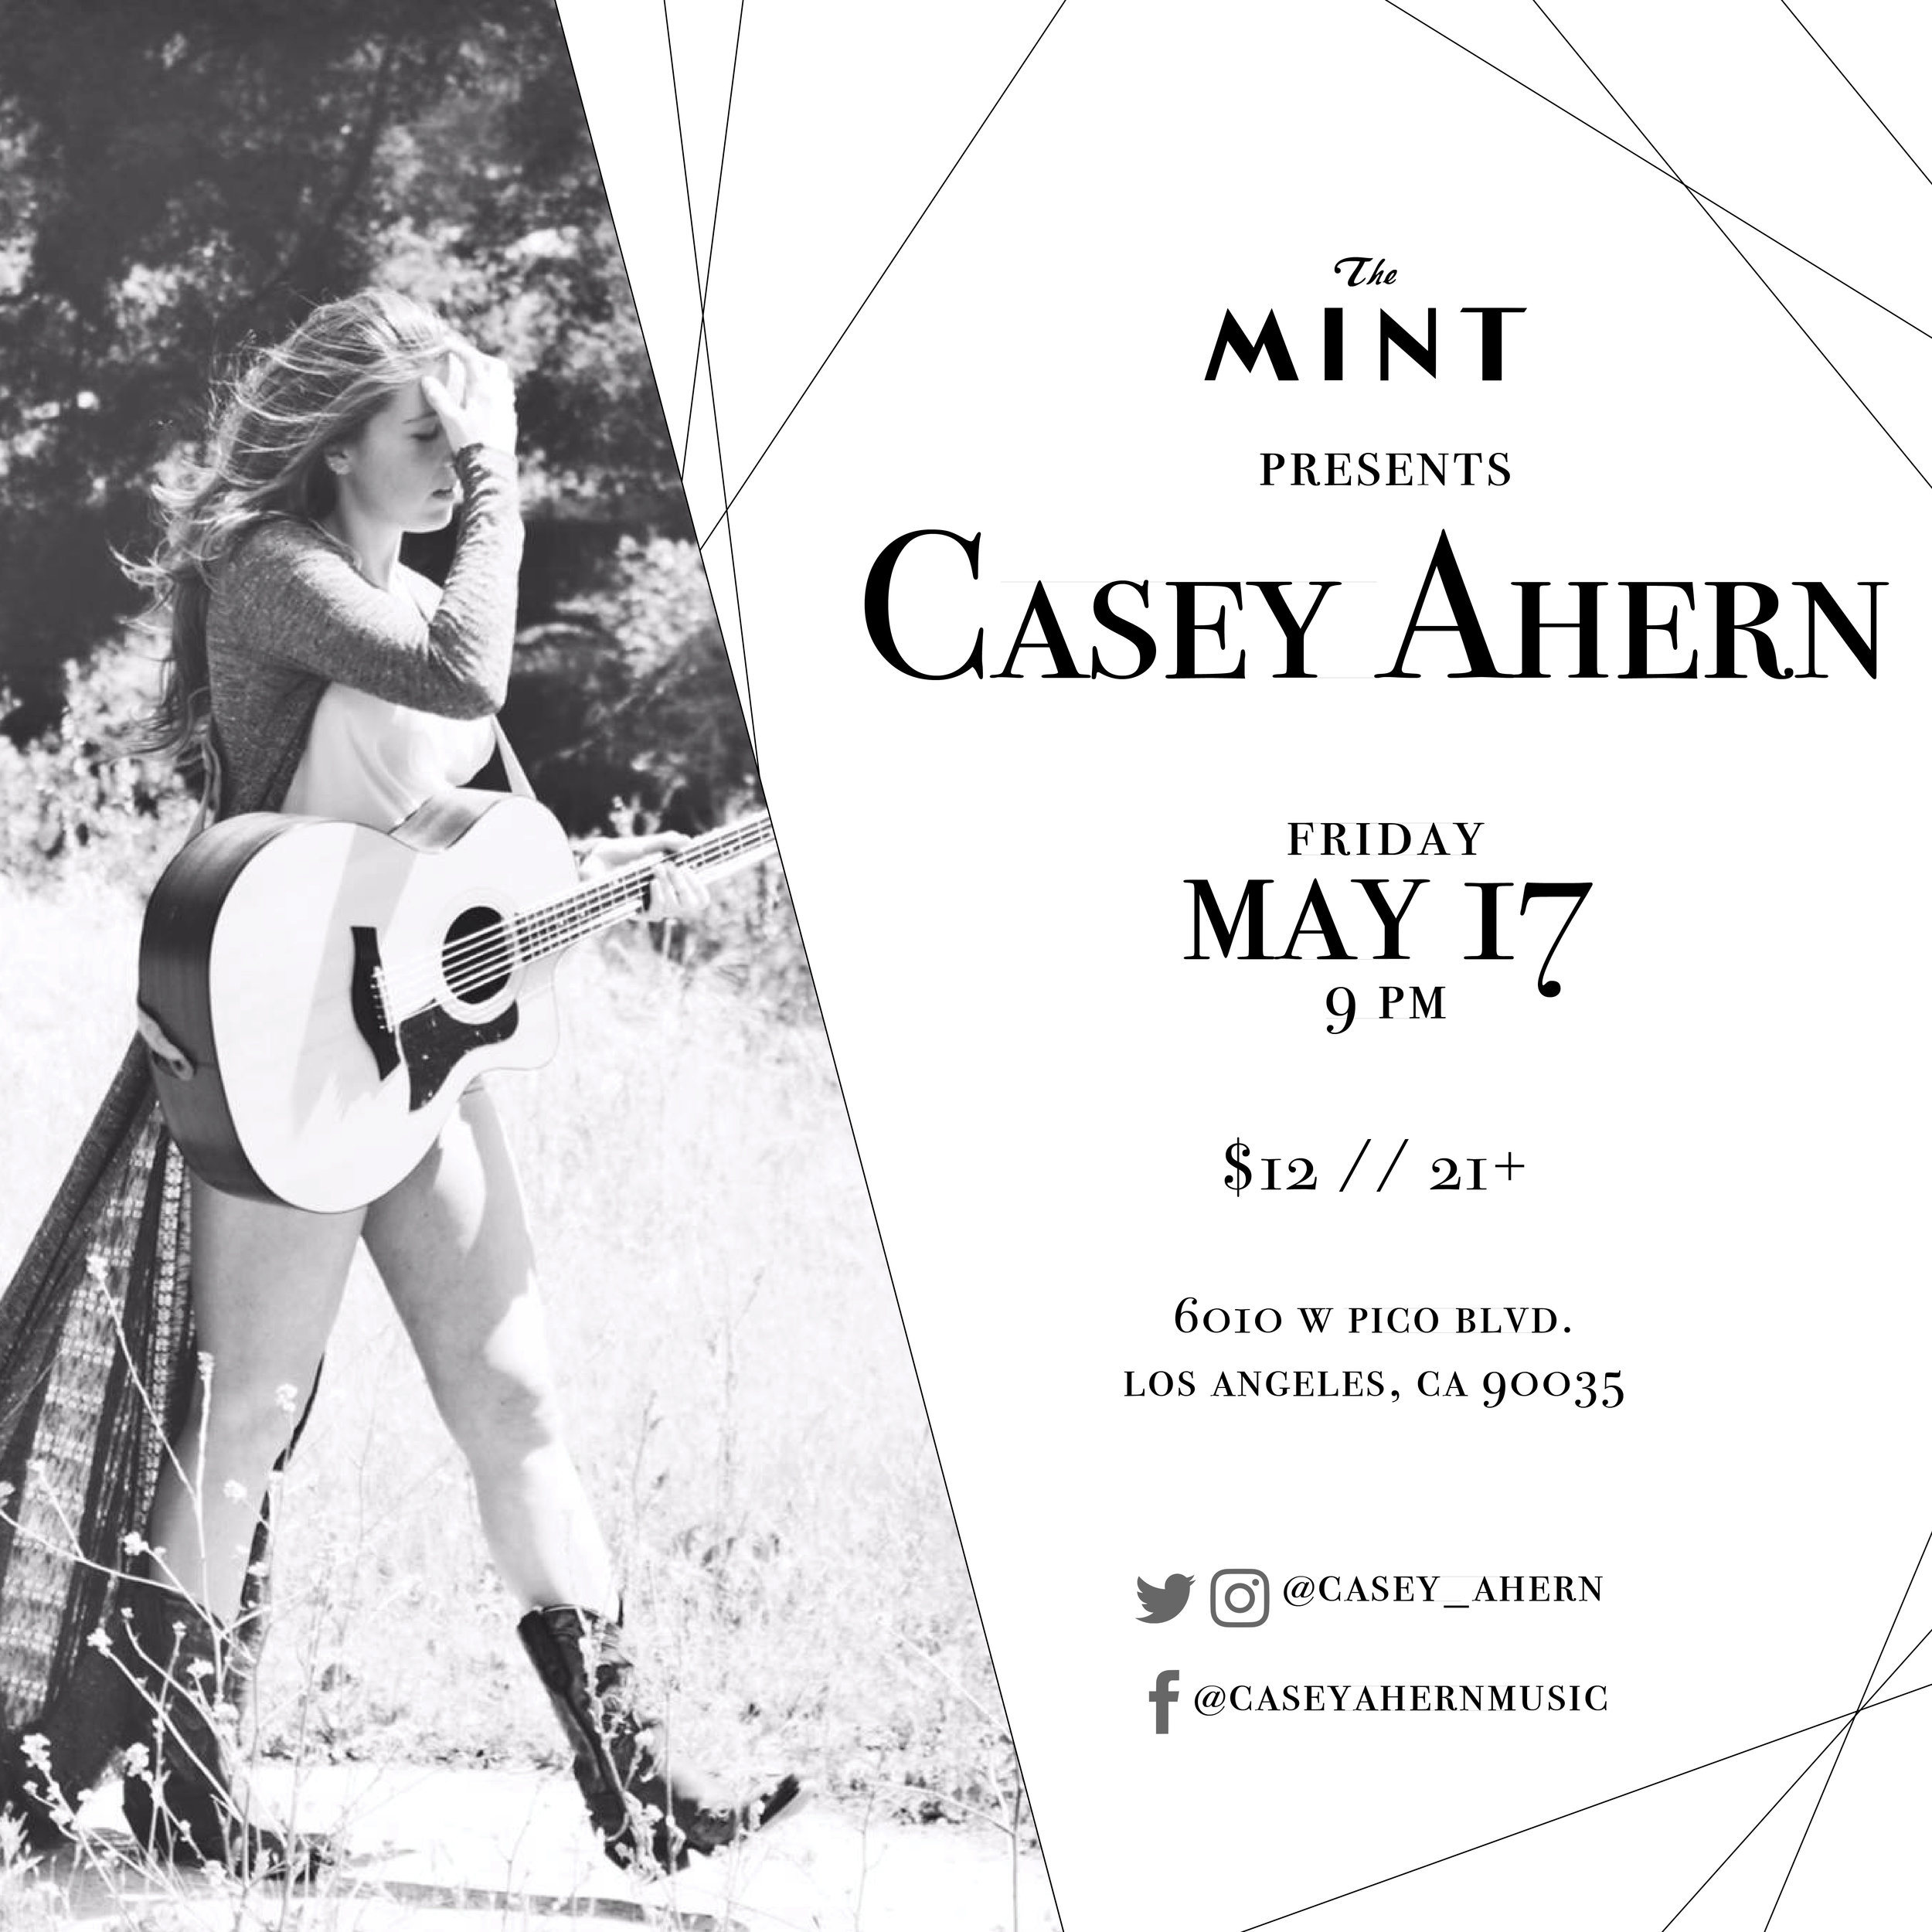 Casey Ahern Mint 5/17 flyer